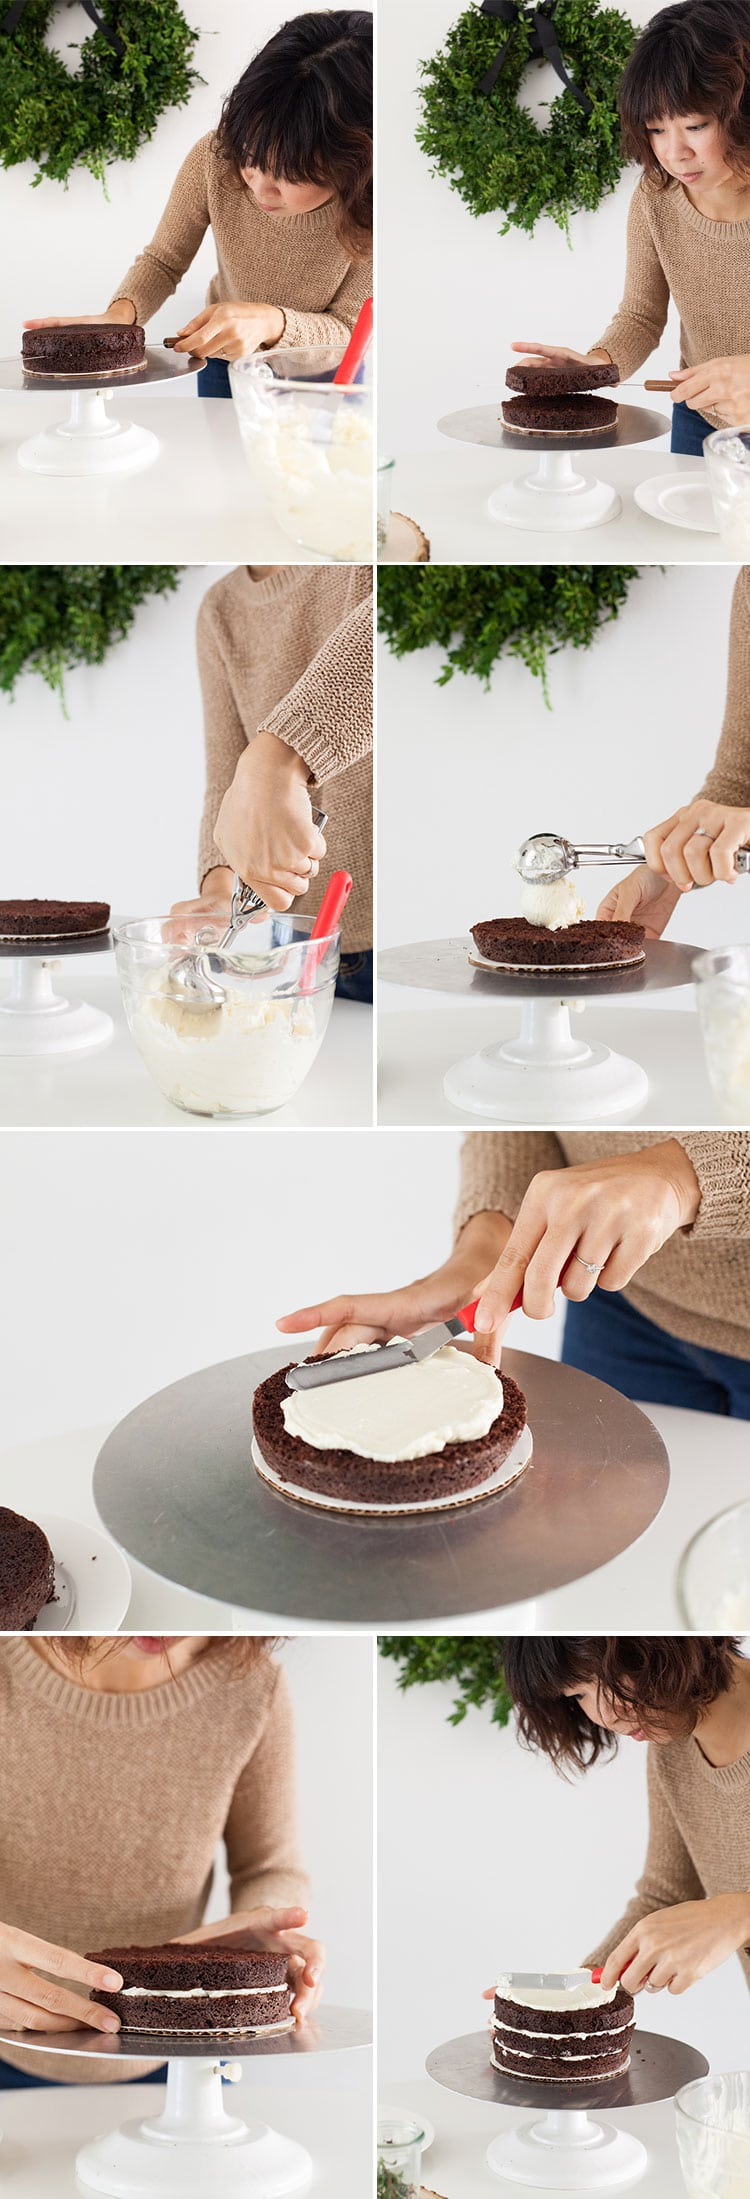 How to Decorate a winter cake 1 How to: Decorate a Winter Cake